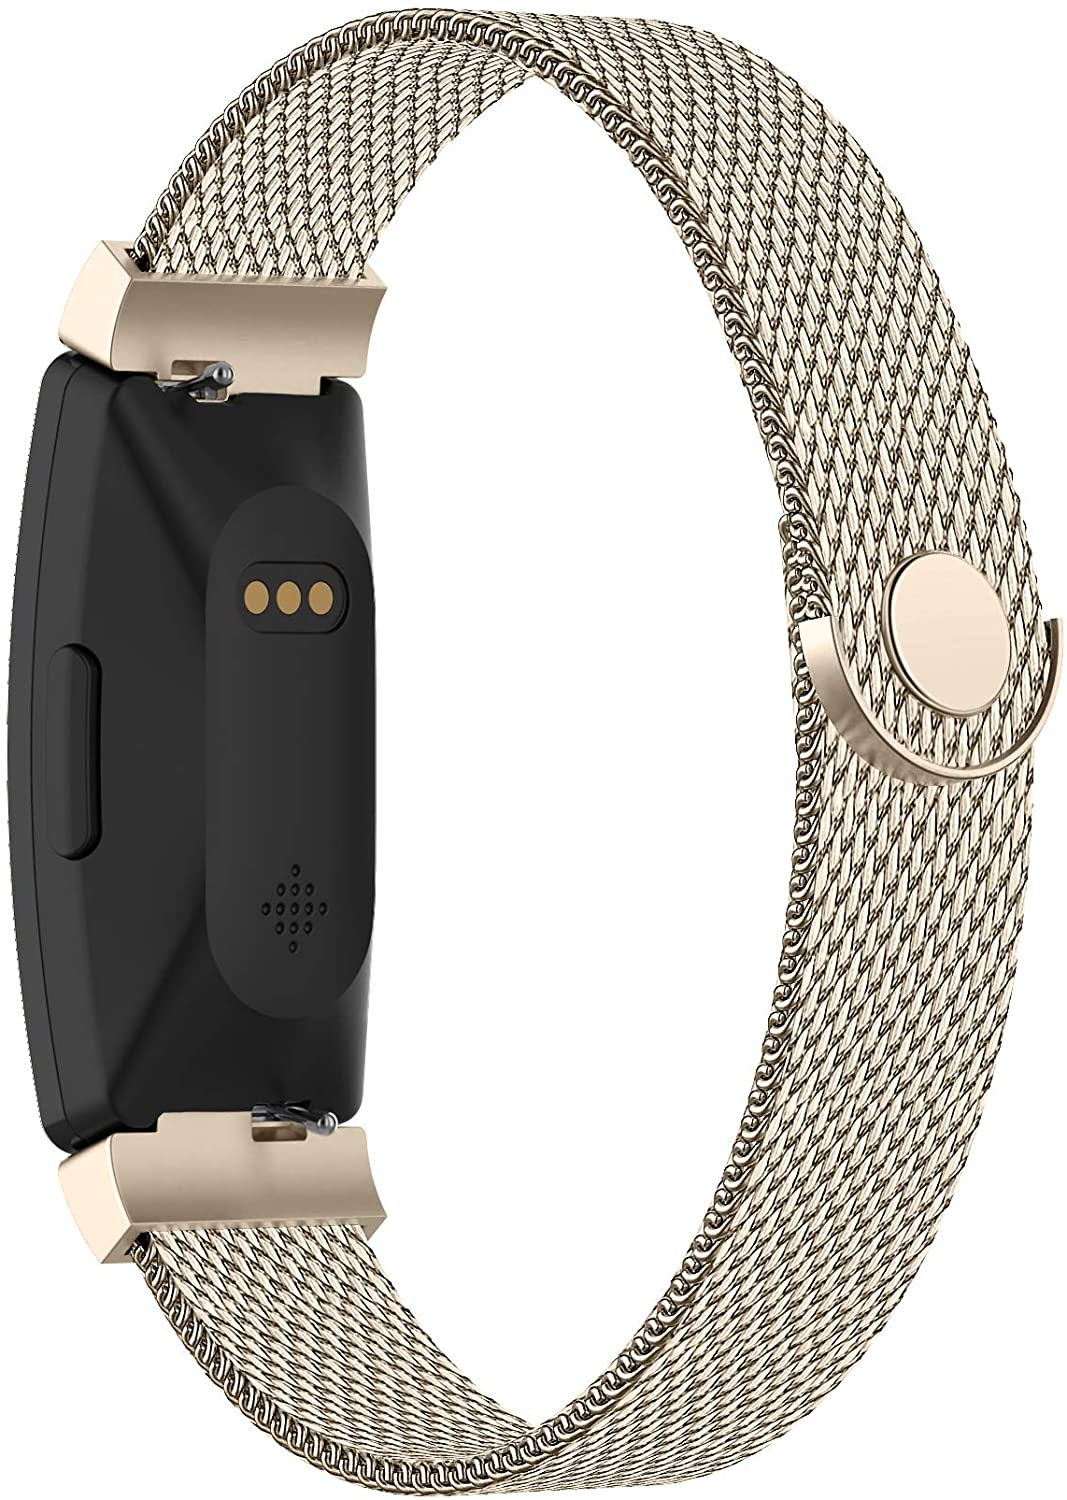 POY Compatible with Fitbit Inspire Hr Bands, Stainless Steel Replacement for Fitbit Inspire and Ace 2 Metal Loop Bracelet Sweatproof Wristbands for Women Men Champagne Large